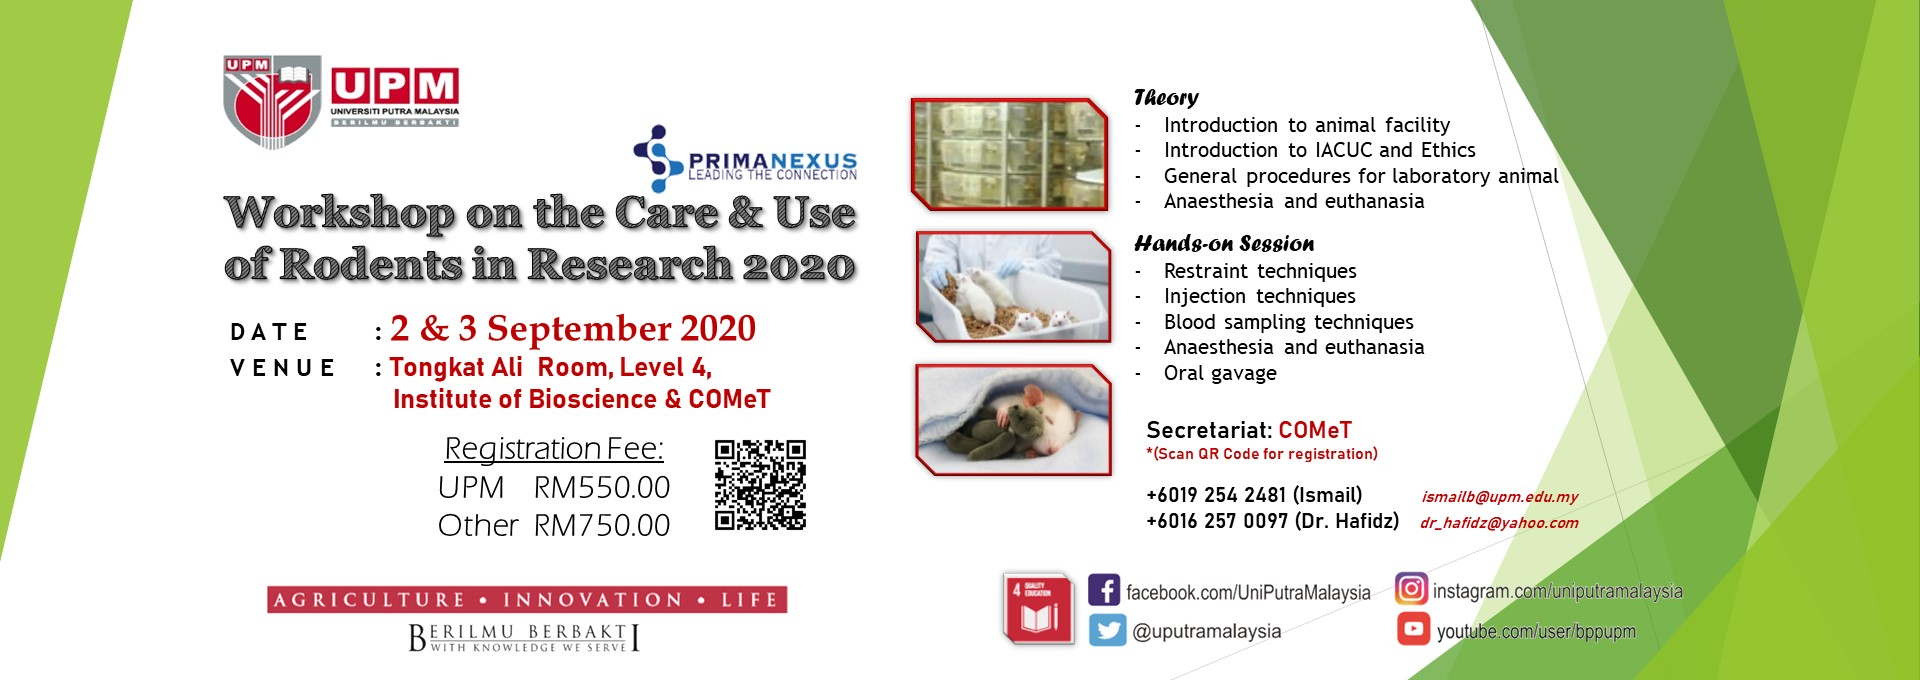 Workshop on The Care & Use Rodents in Research 2020